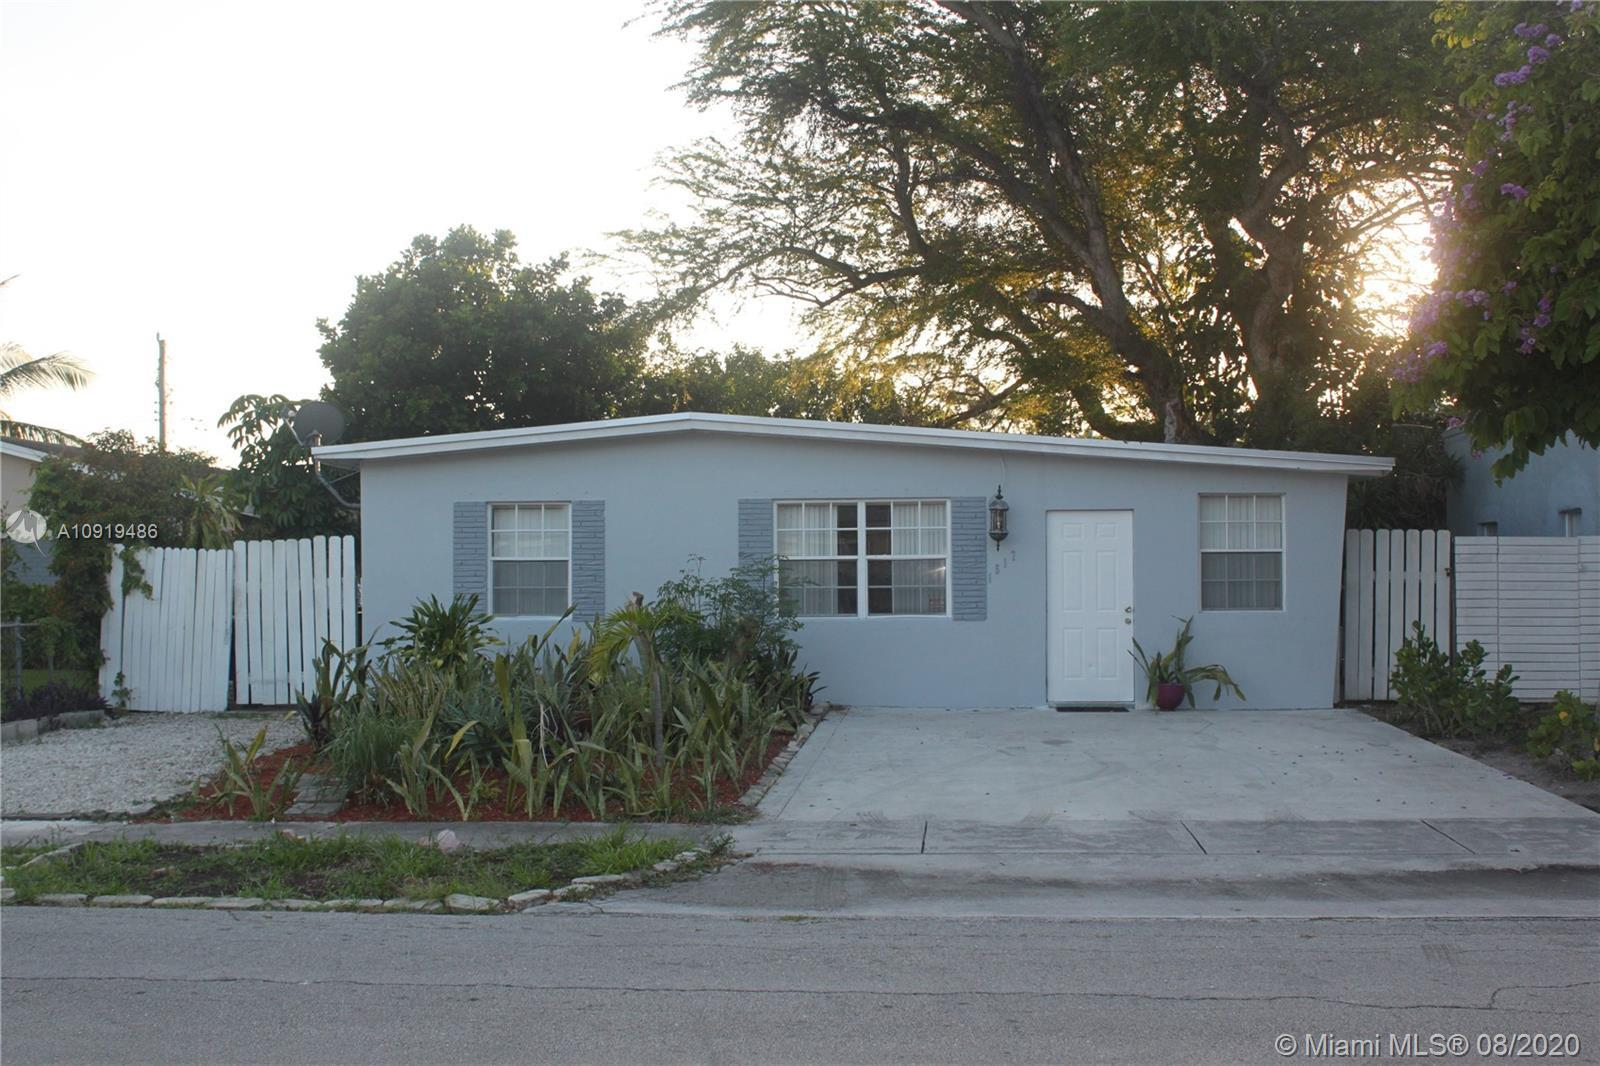 SINGLE FAMILY HOME LOCATED BLOCKS FROM WILTON MANORS AND A SHORT STROLL TO THE BEACH. RECENTLY PAINT